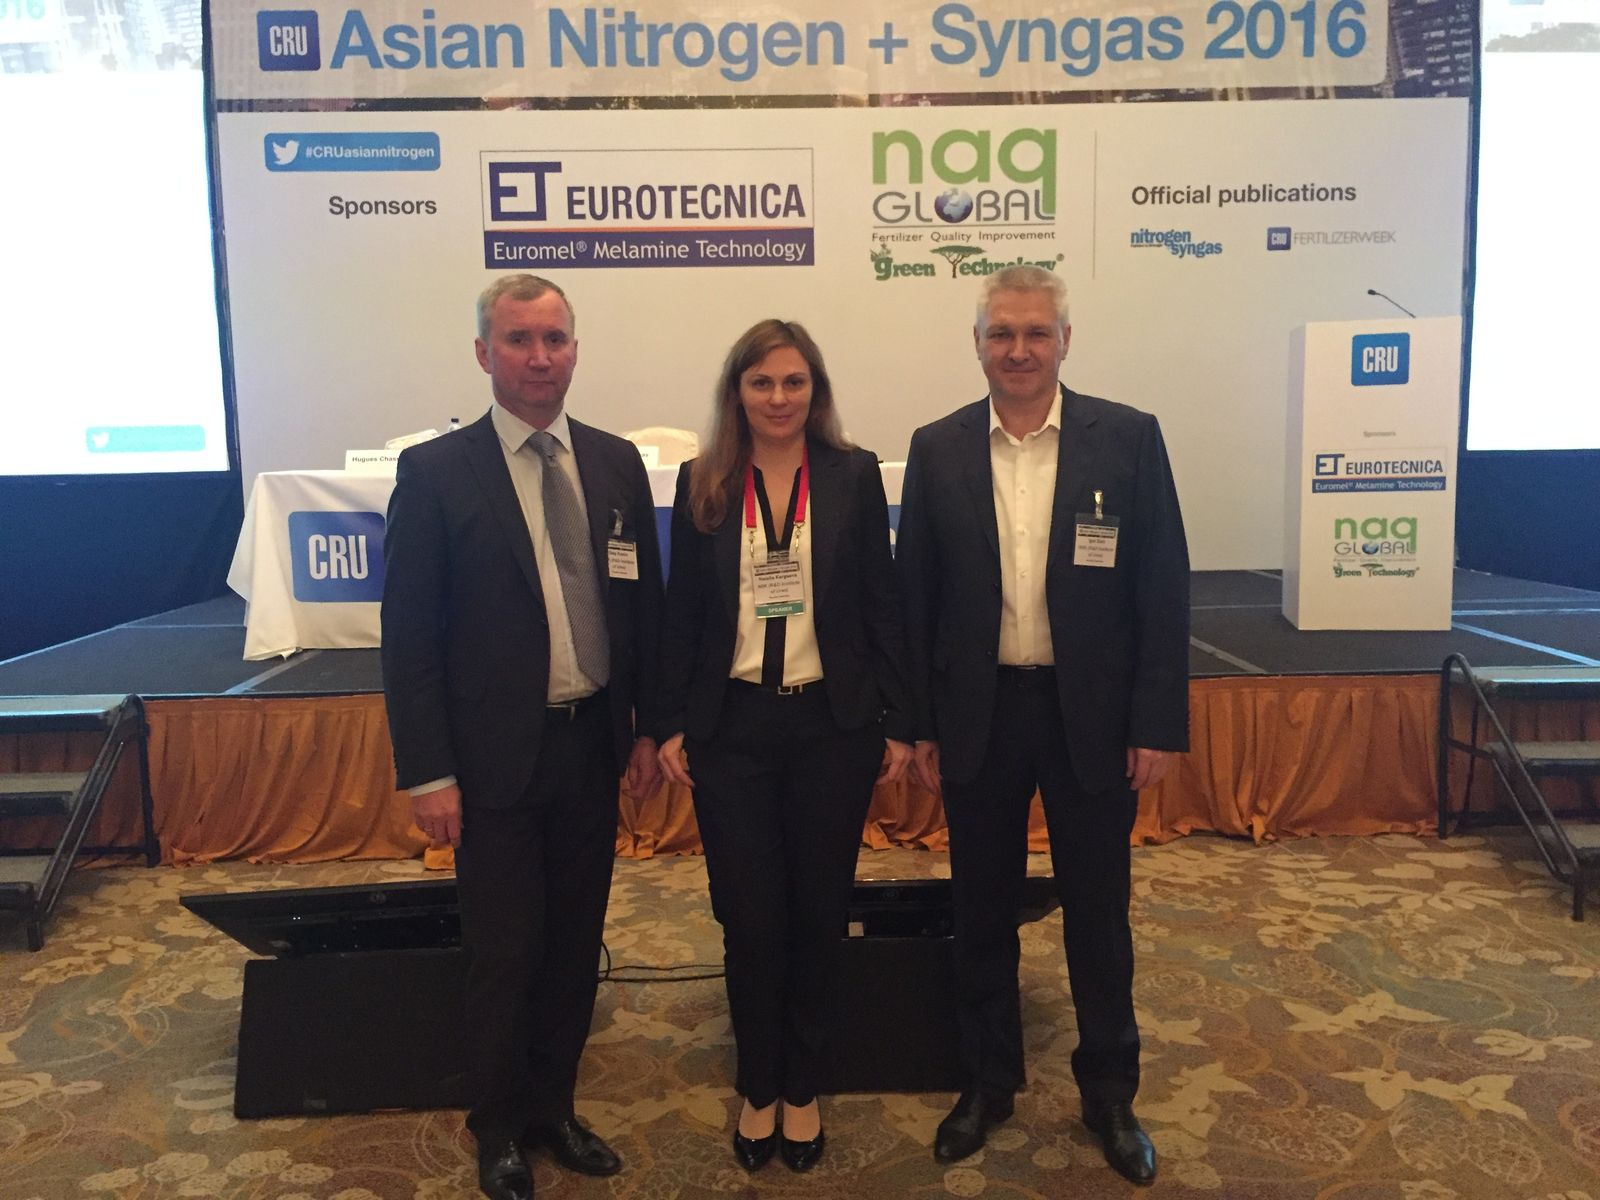 NIIK's delegation attended the fifth annual conference Asian Nitrogen&Syngas held on November 21-23 in Jakarta, Indonesia.